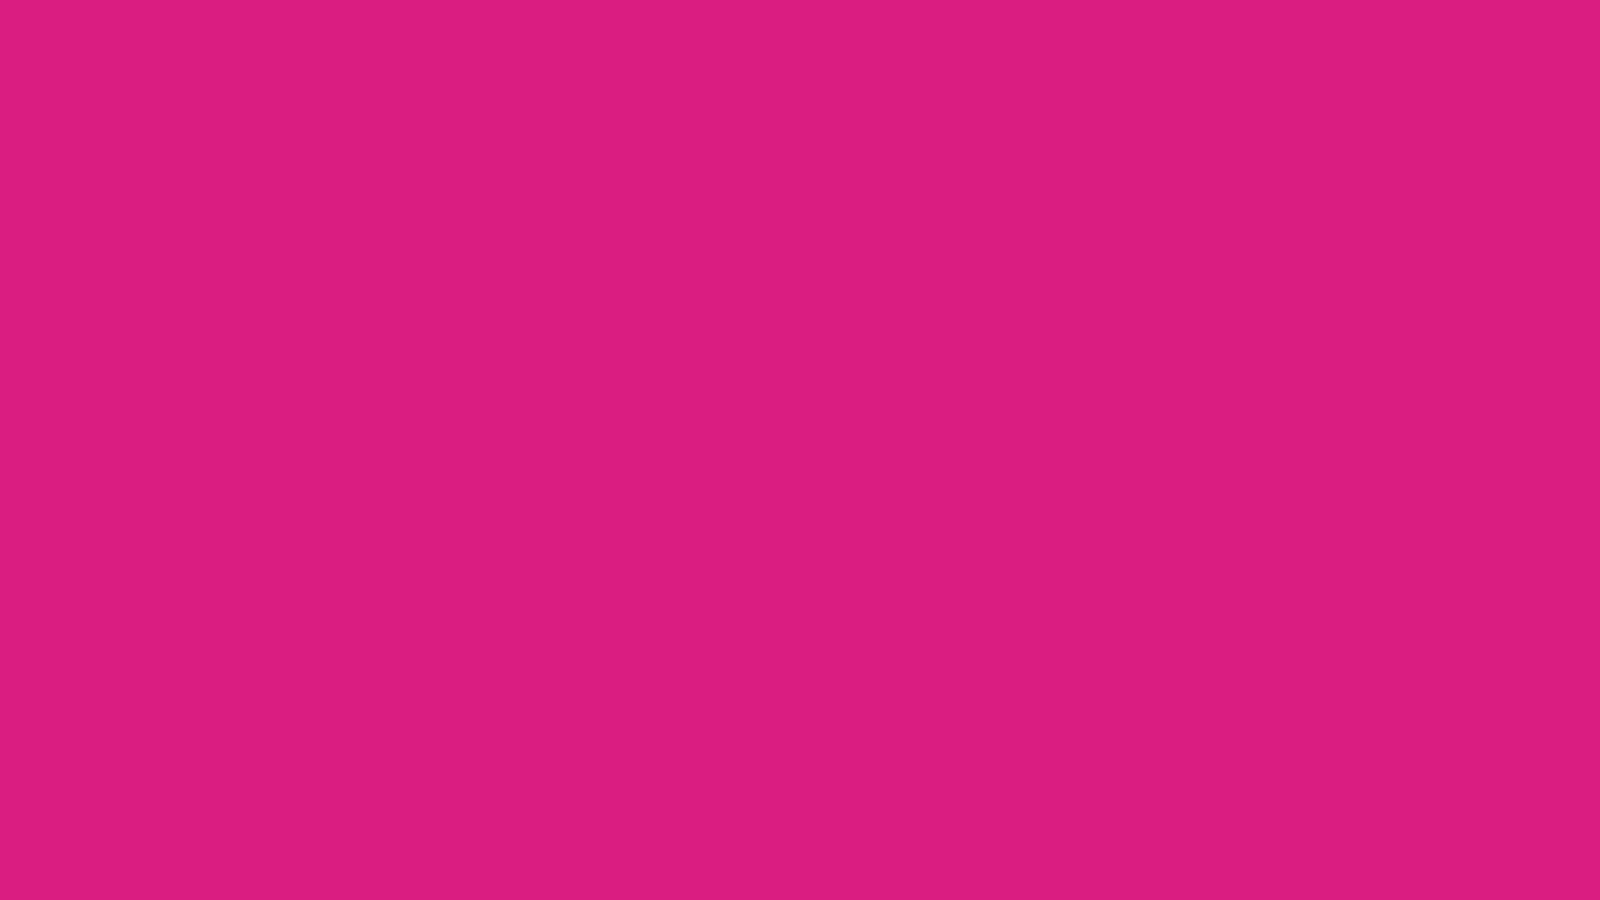 1600x900 Vivid Cerise Solid Color Background